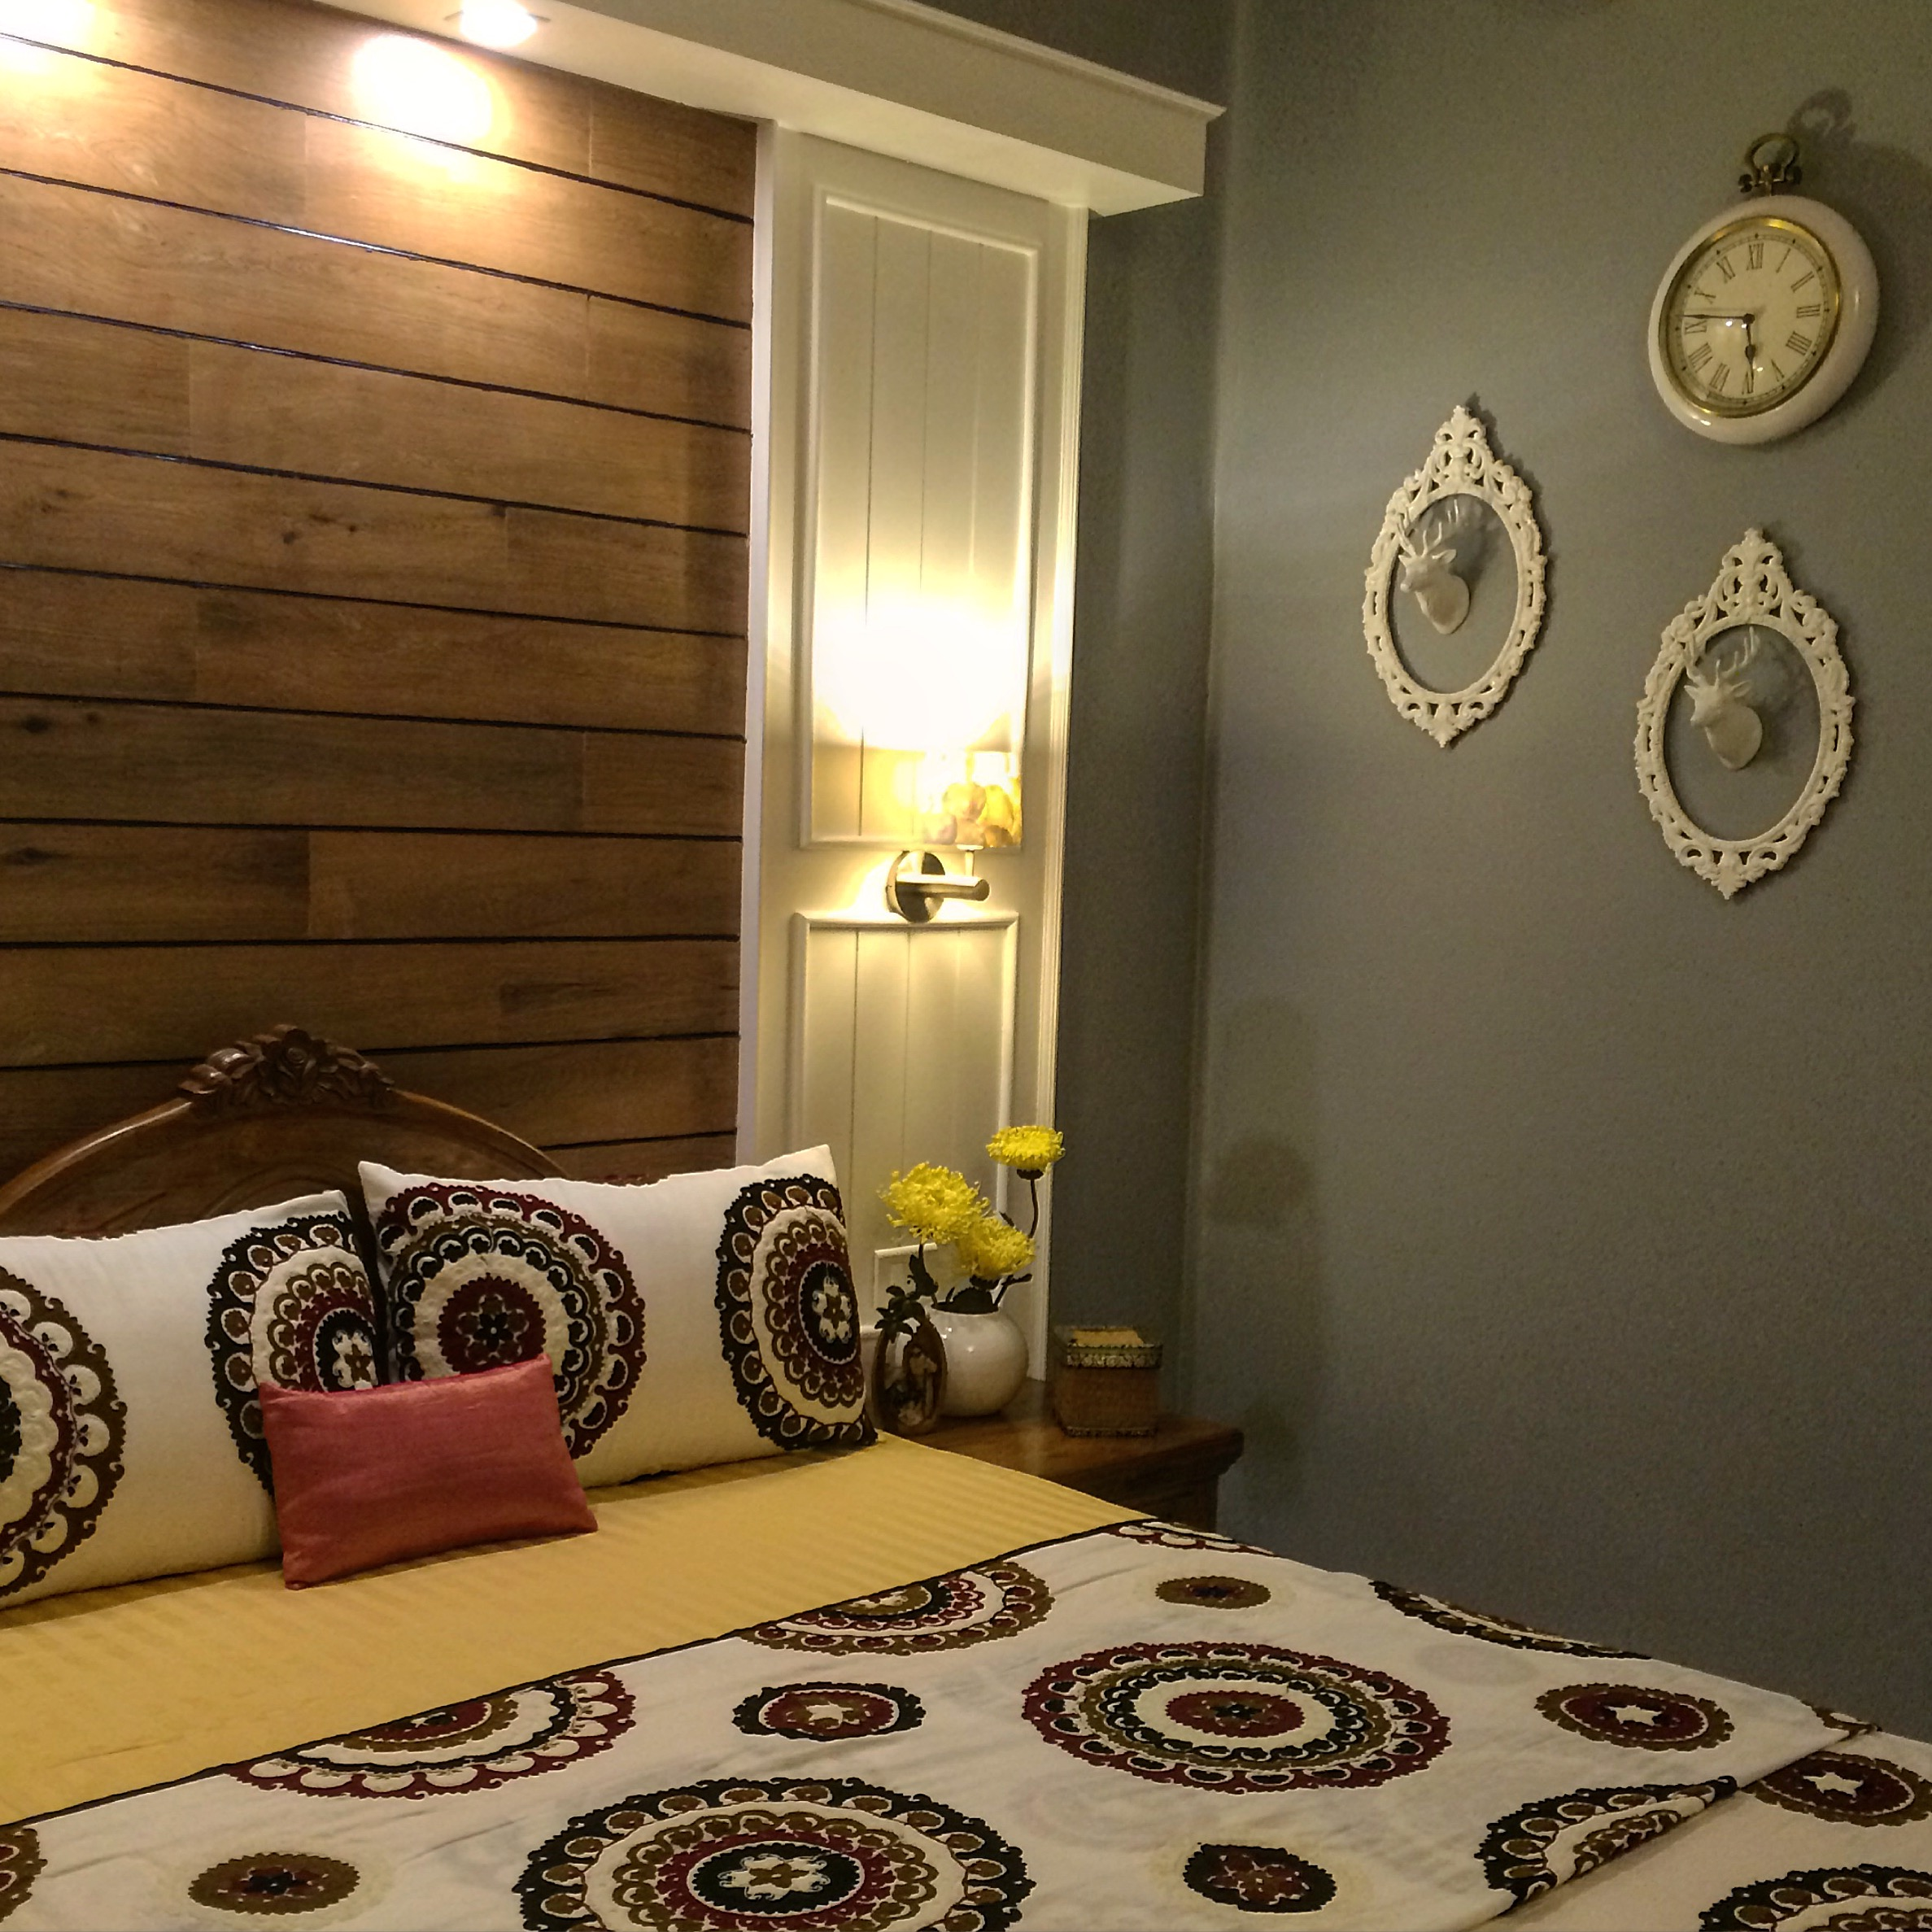 The guest room are decorated with frames on the wall with the beautiful deer heads on it, the embroidery on the bed covers and grey wall | Joseph home tour